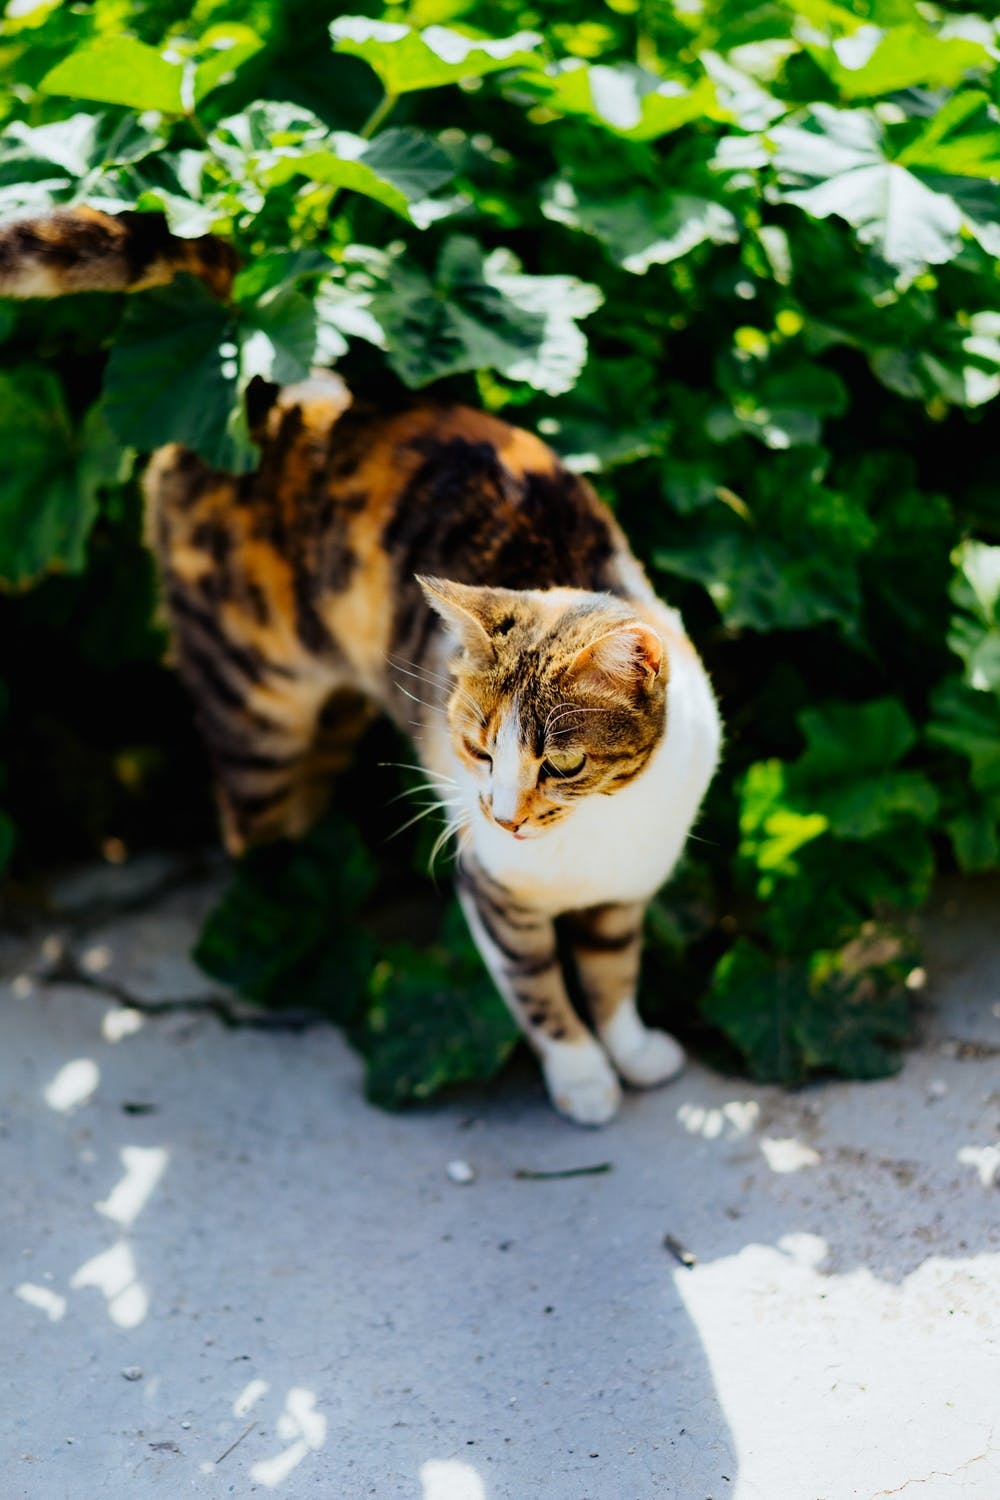 Brown and white striped cat near carmel shuk tel aviv israel